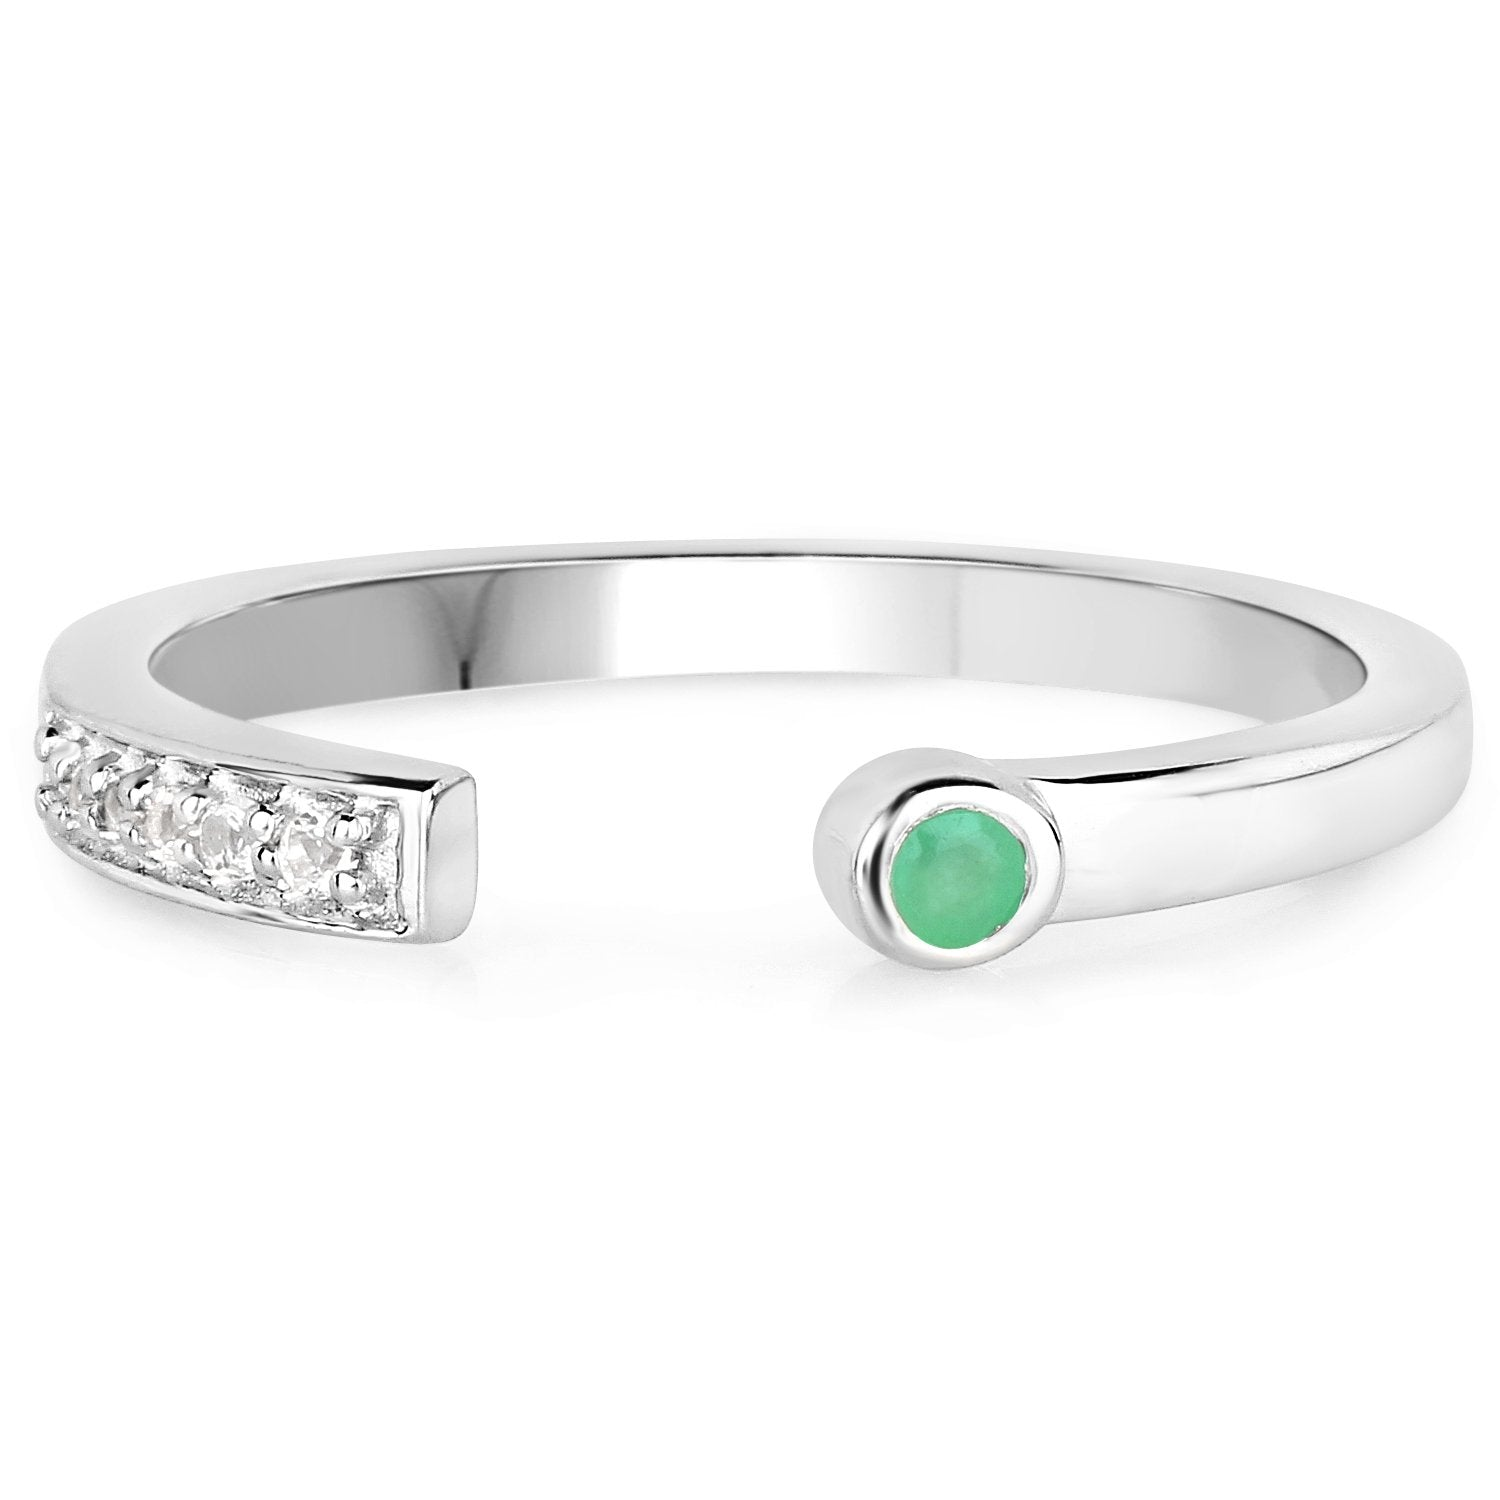 LoveHuang 0.07 Carats Genuine Emerald and White Topaz Stacking Ring Solid .925 Sterling Silver With Rhodium Plating